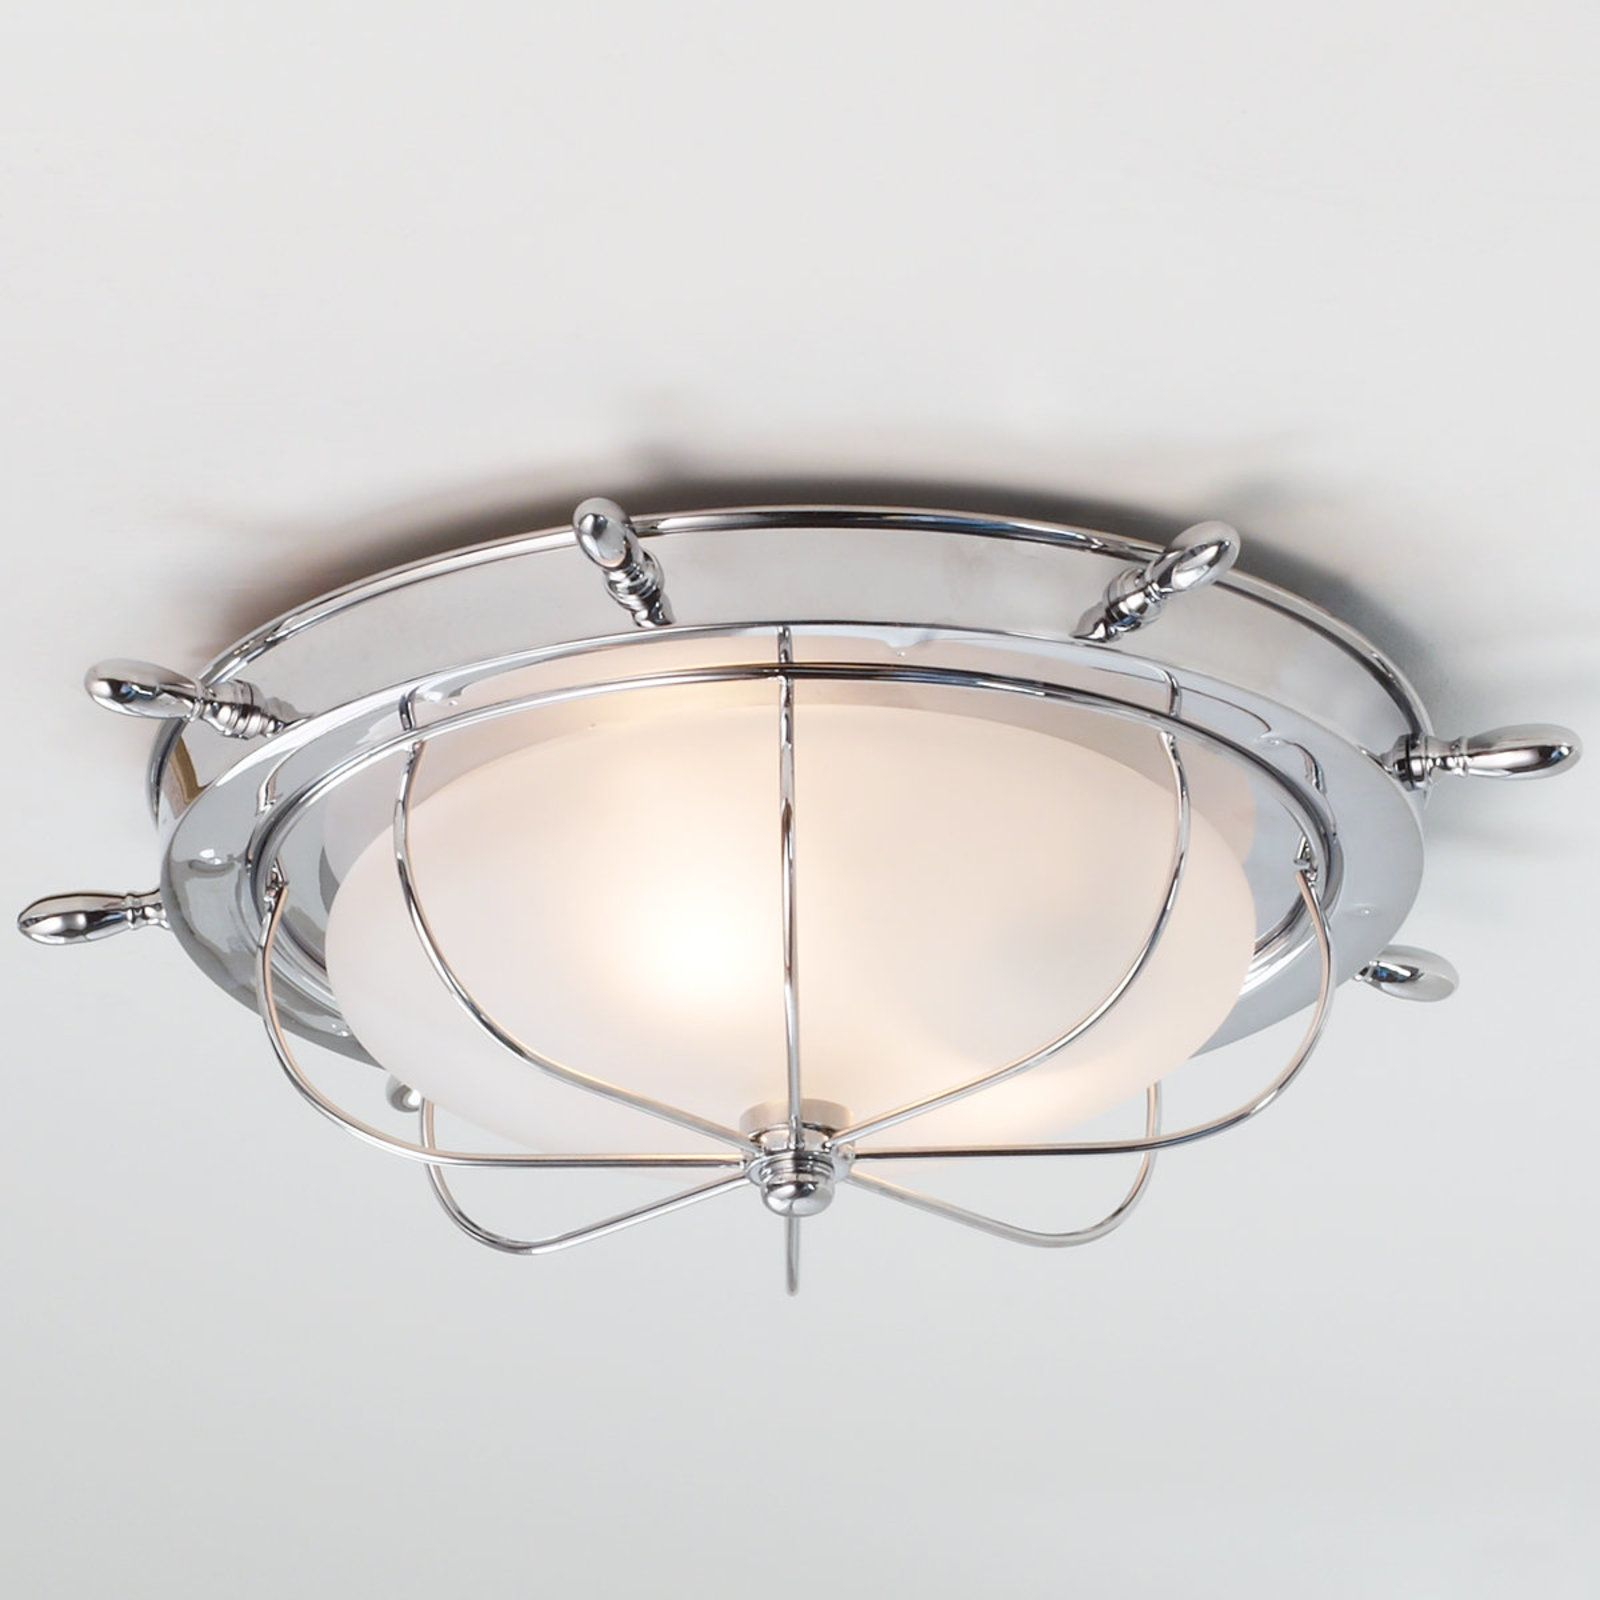 Captain S Ceiling Light Nautical